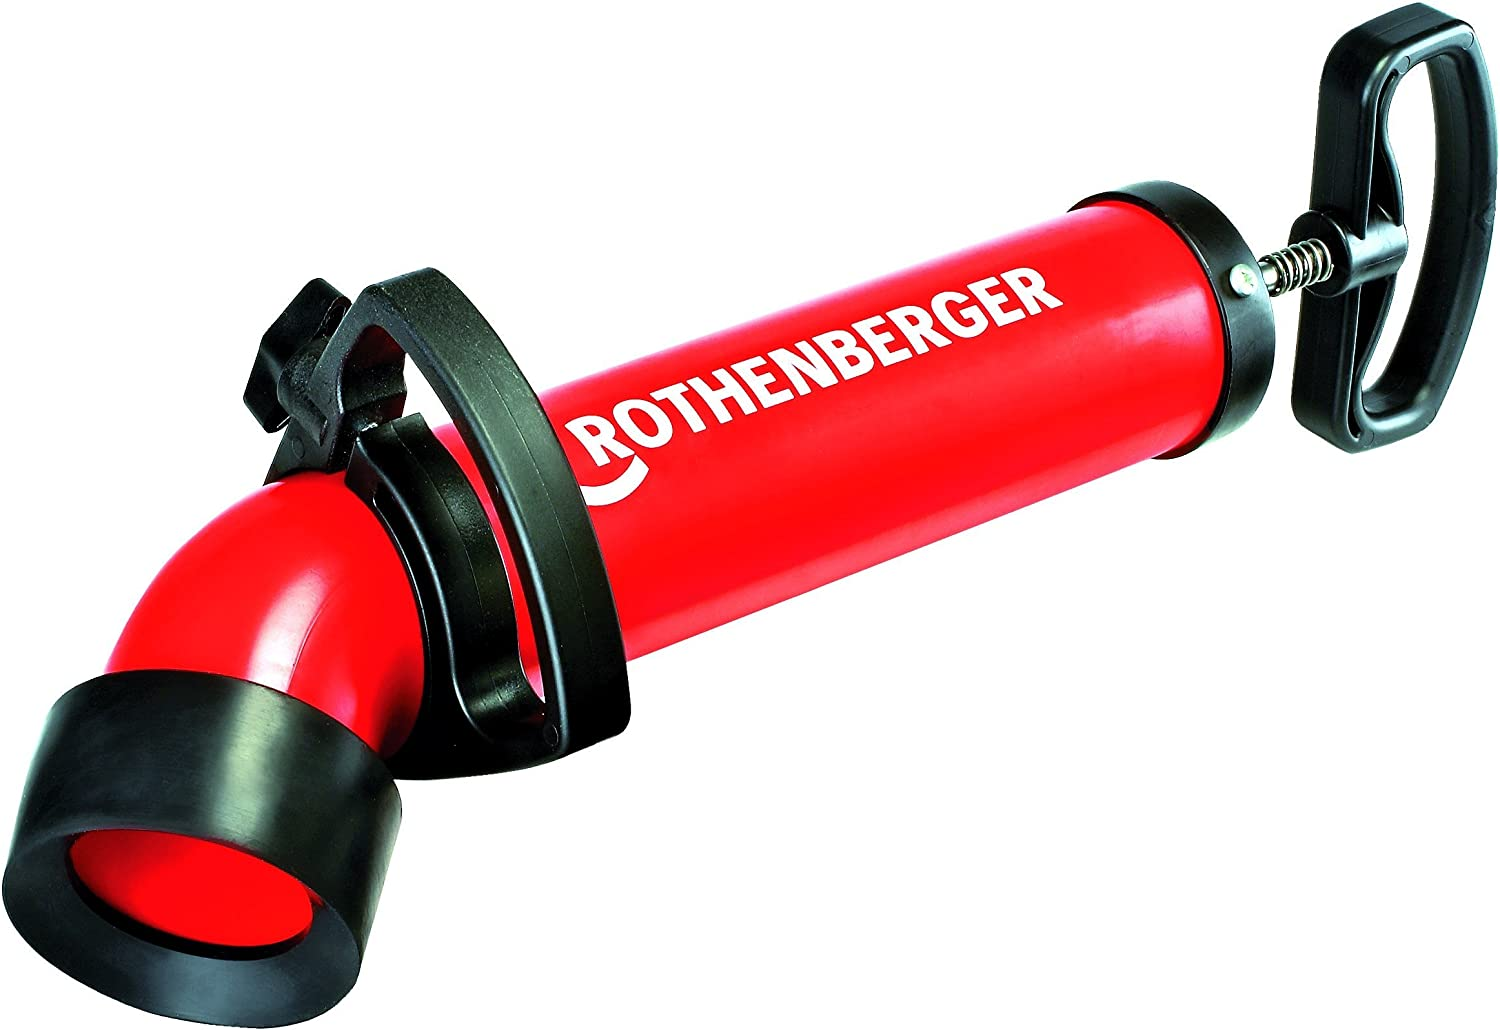 ROTHENBERGER 72070X 072070X-Bomba desatascad. ropump Super Plus, Red